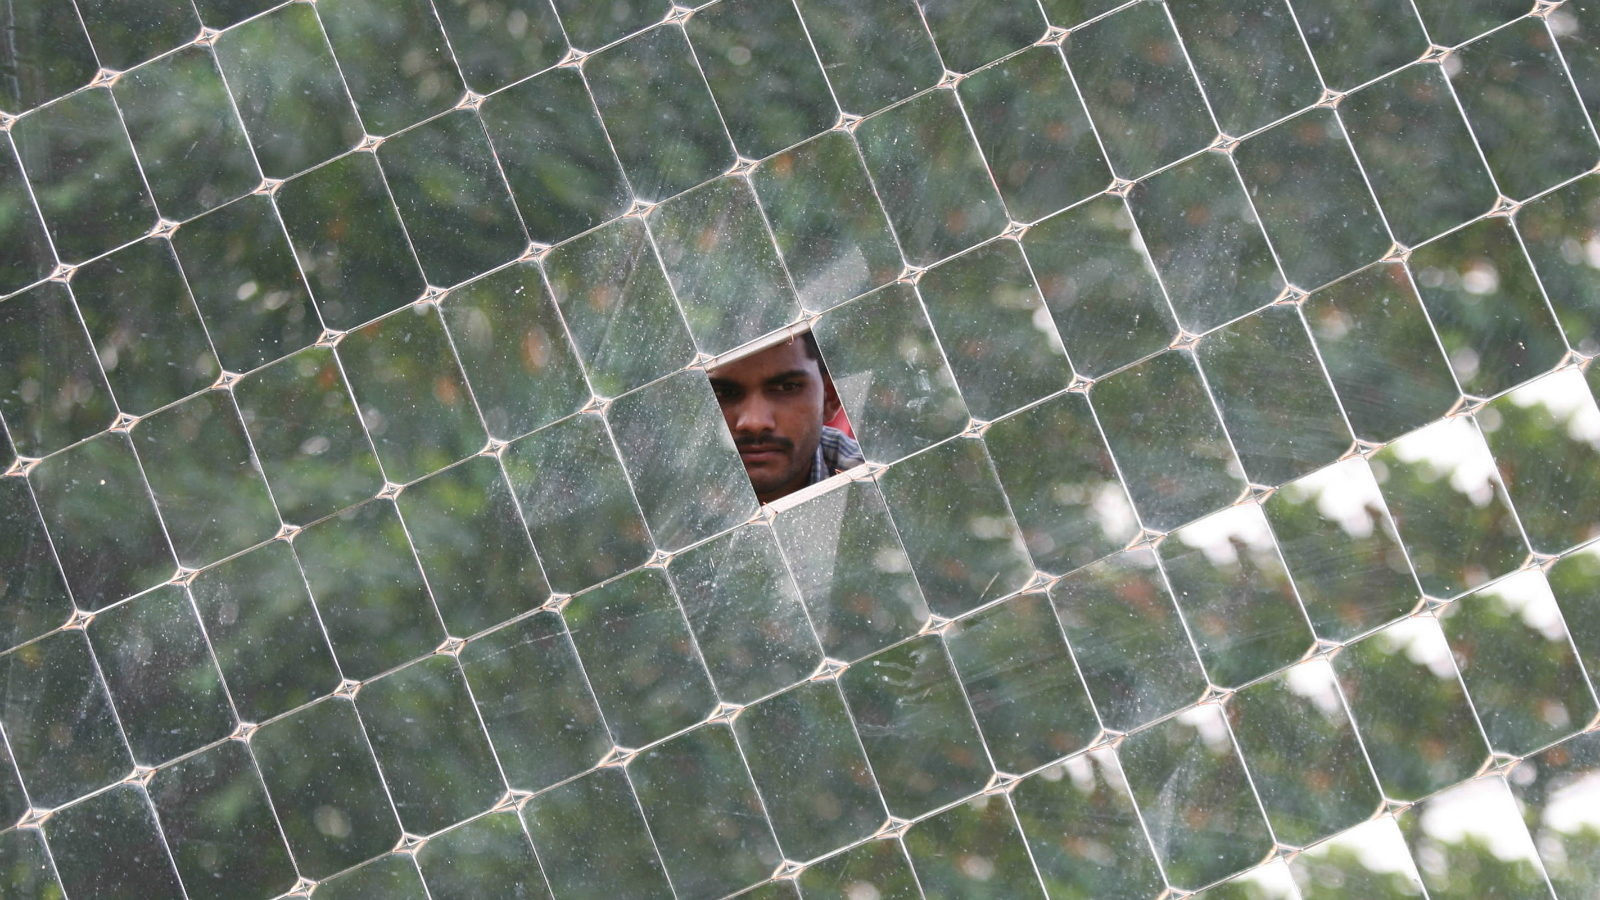 A worker looks through a solar concentrator panel (solar parabolic dish) at the Gadhia solar energy systems manufacturing unit at Gundlav village, about 400 km (250 miles) south of the western Indian city of Ahmedabad, December 16, 2009.